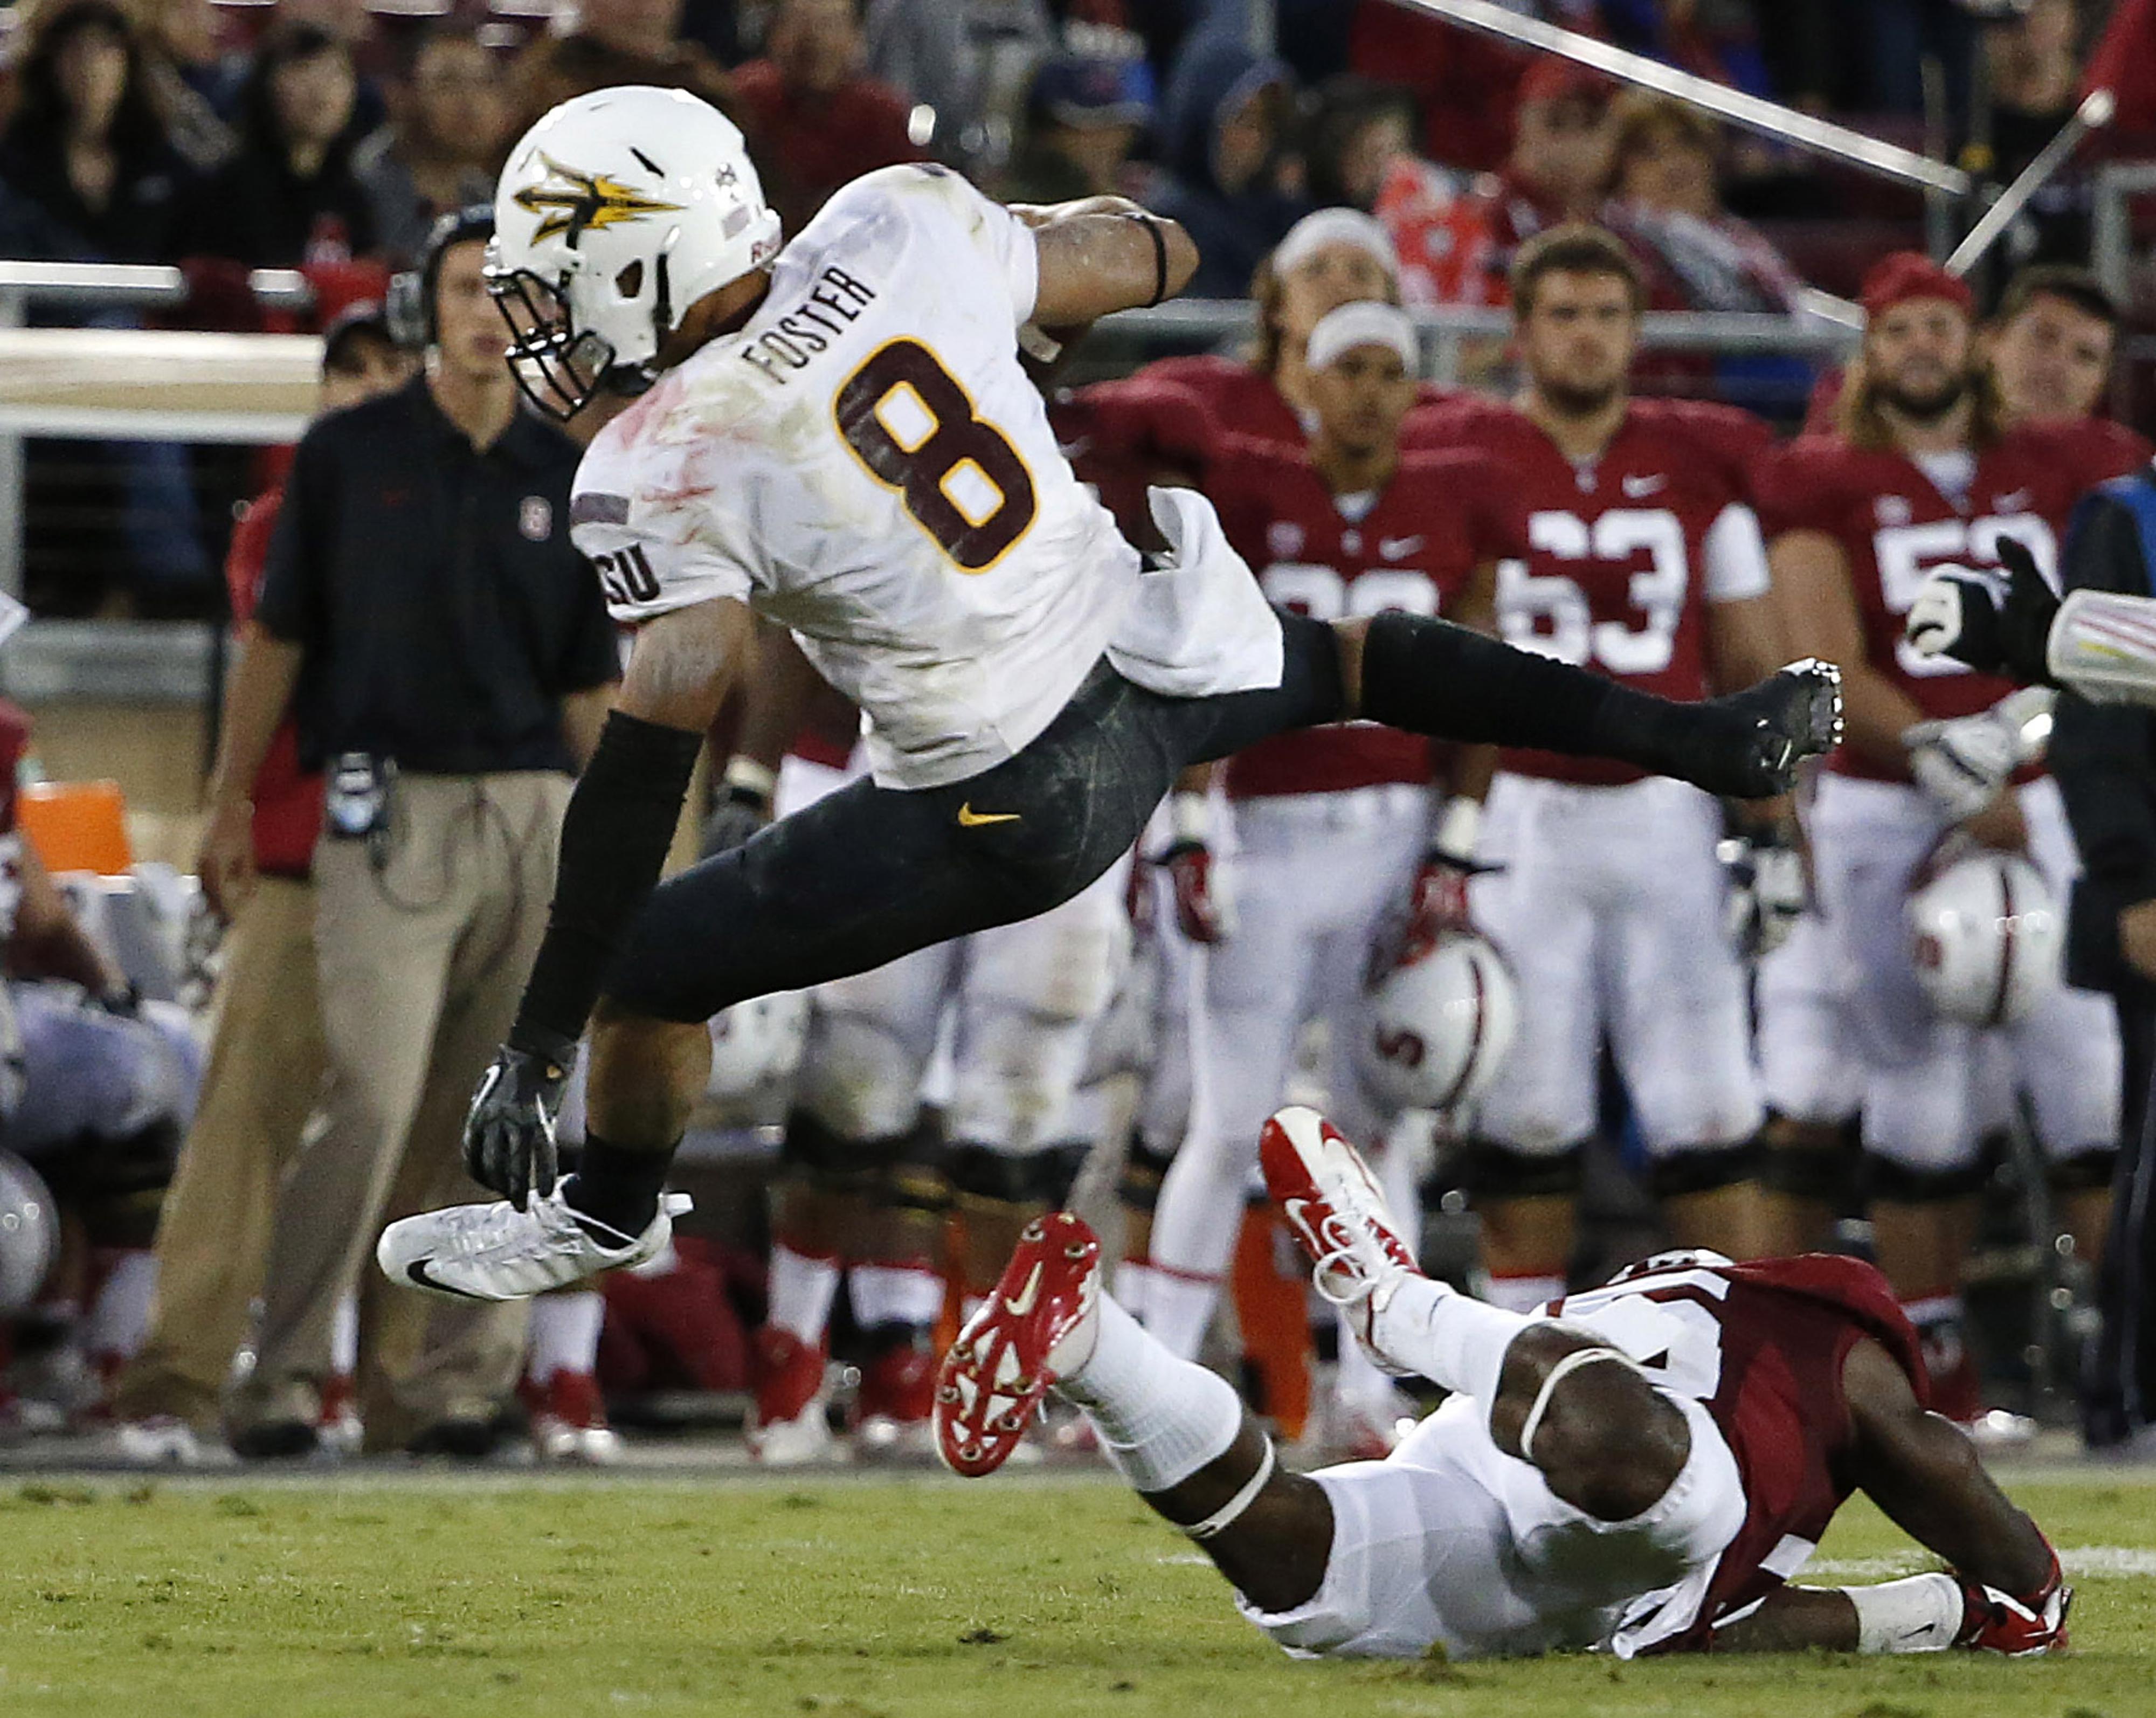 Will the USC defense be able to stop the high powered ASU offense?